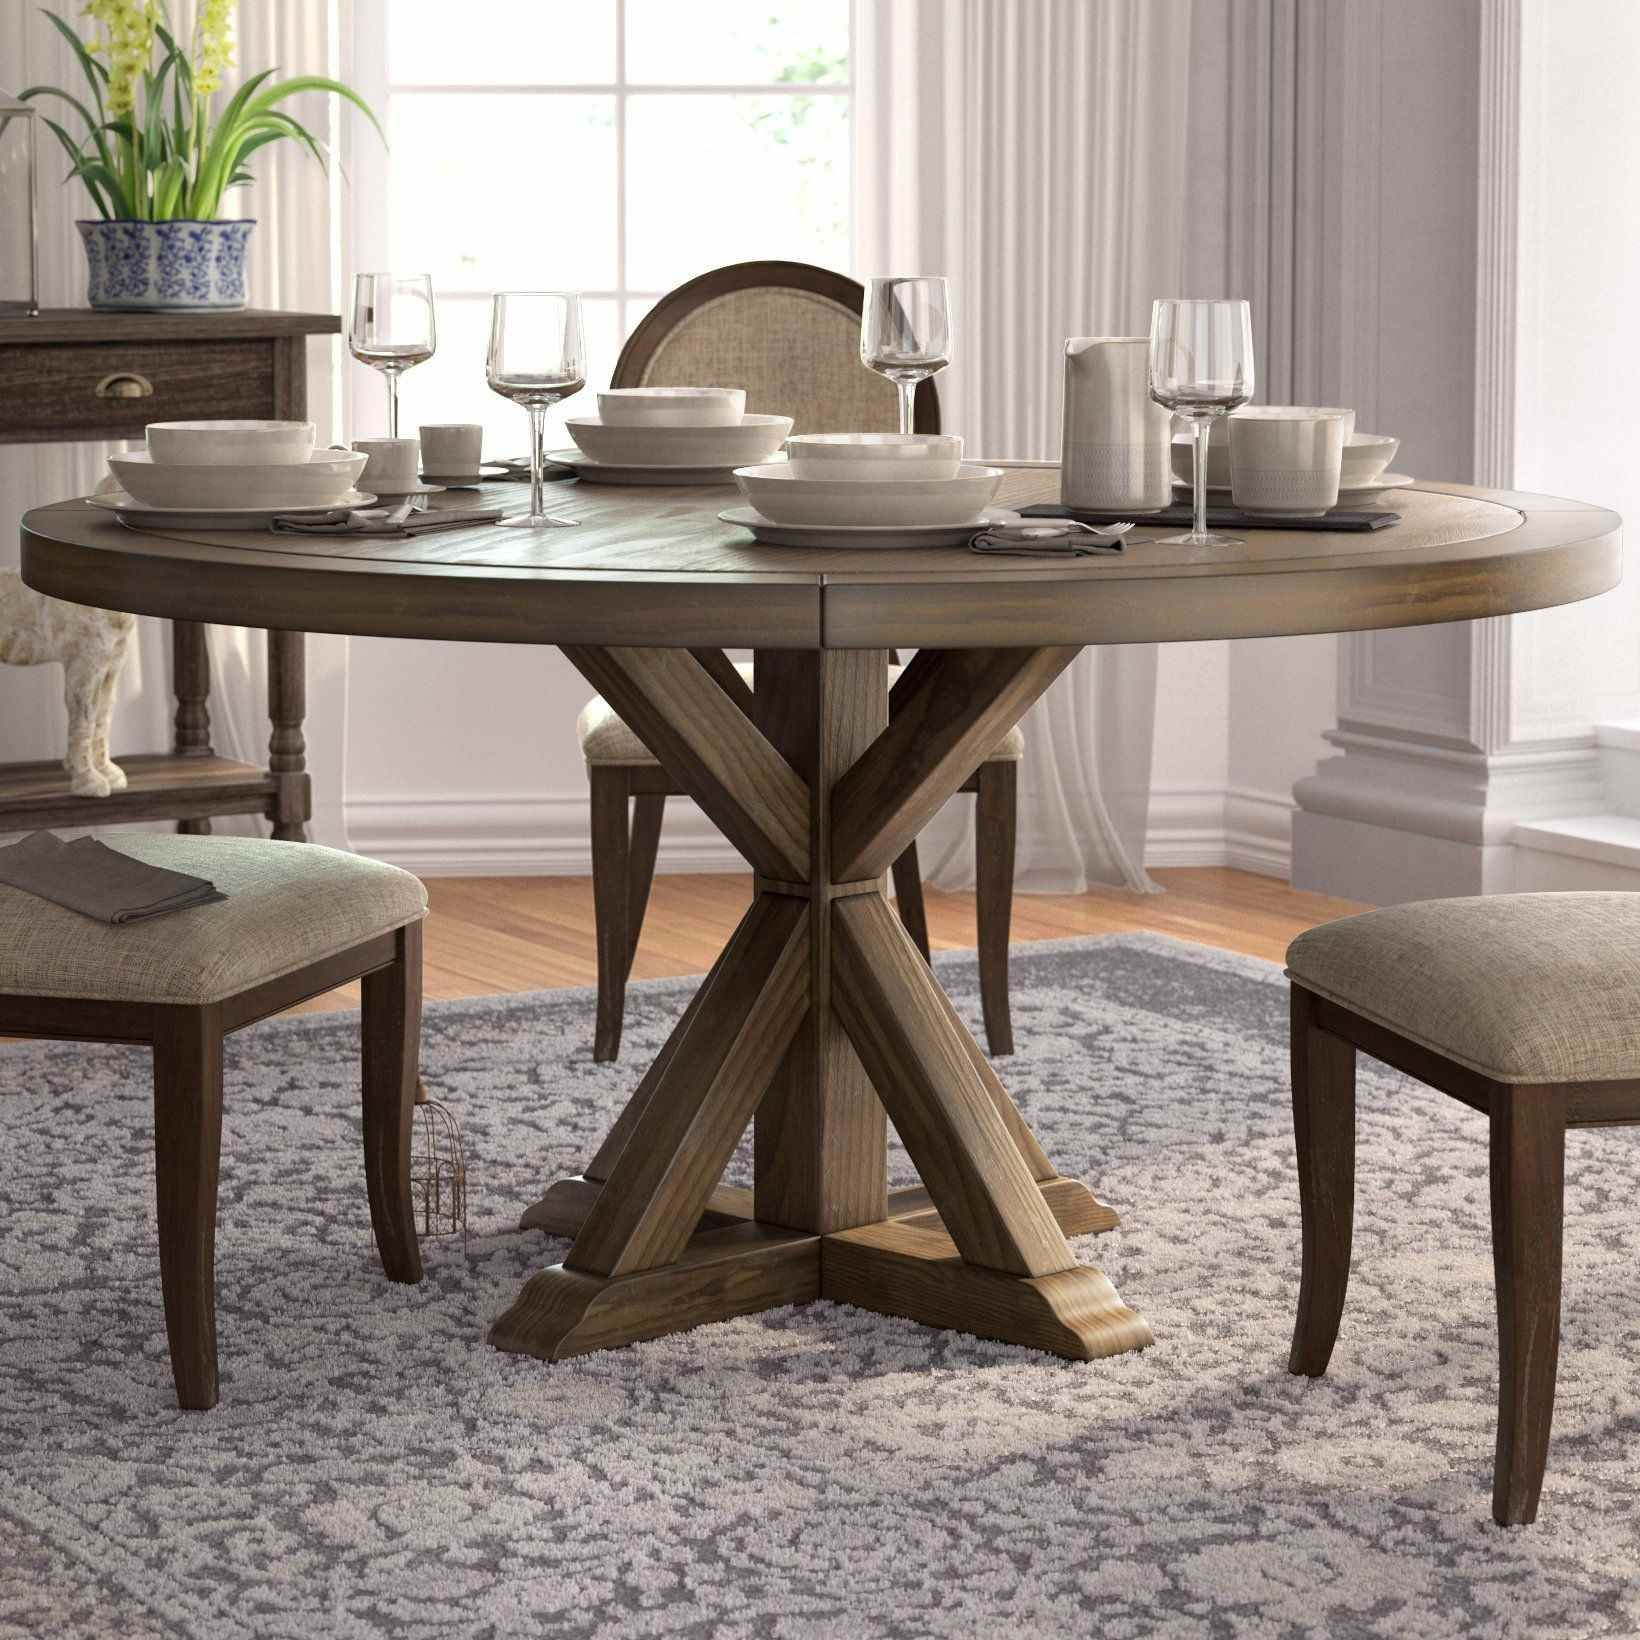 Light Wood Formal Dining Room Sets In 2020 Round Dining Room Table Round Wood Dining Table Wood Dining Room Table